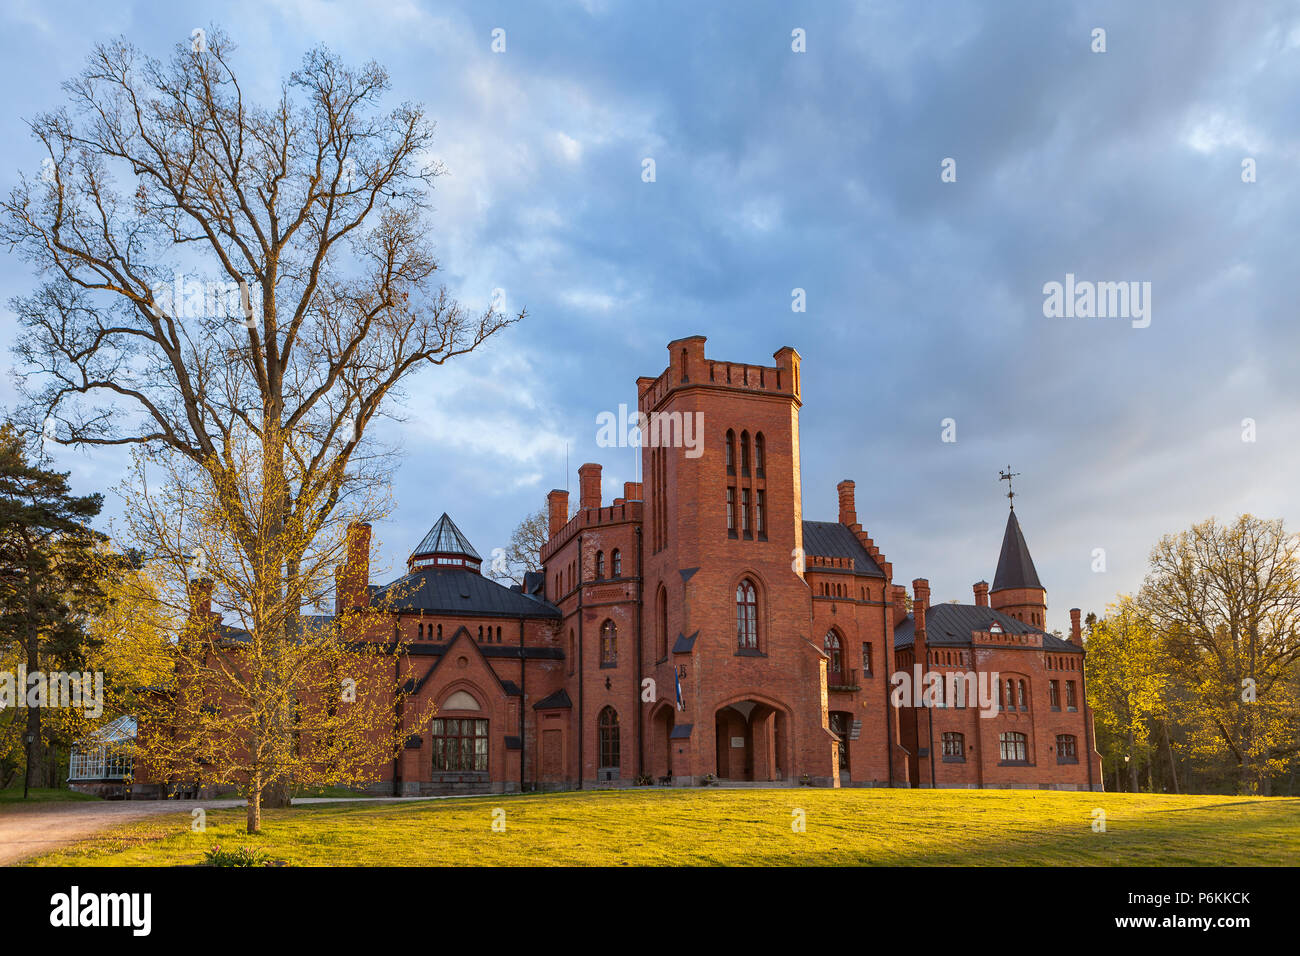 Historic sight Sangaste in Estonia. Red brick castle in the English style. - Stock Image